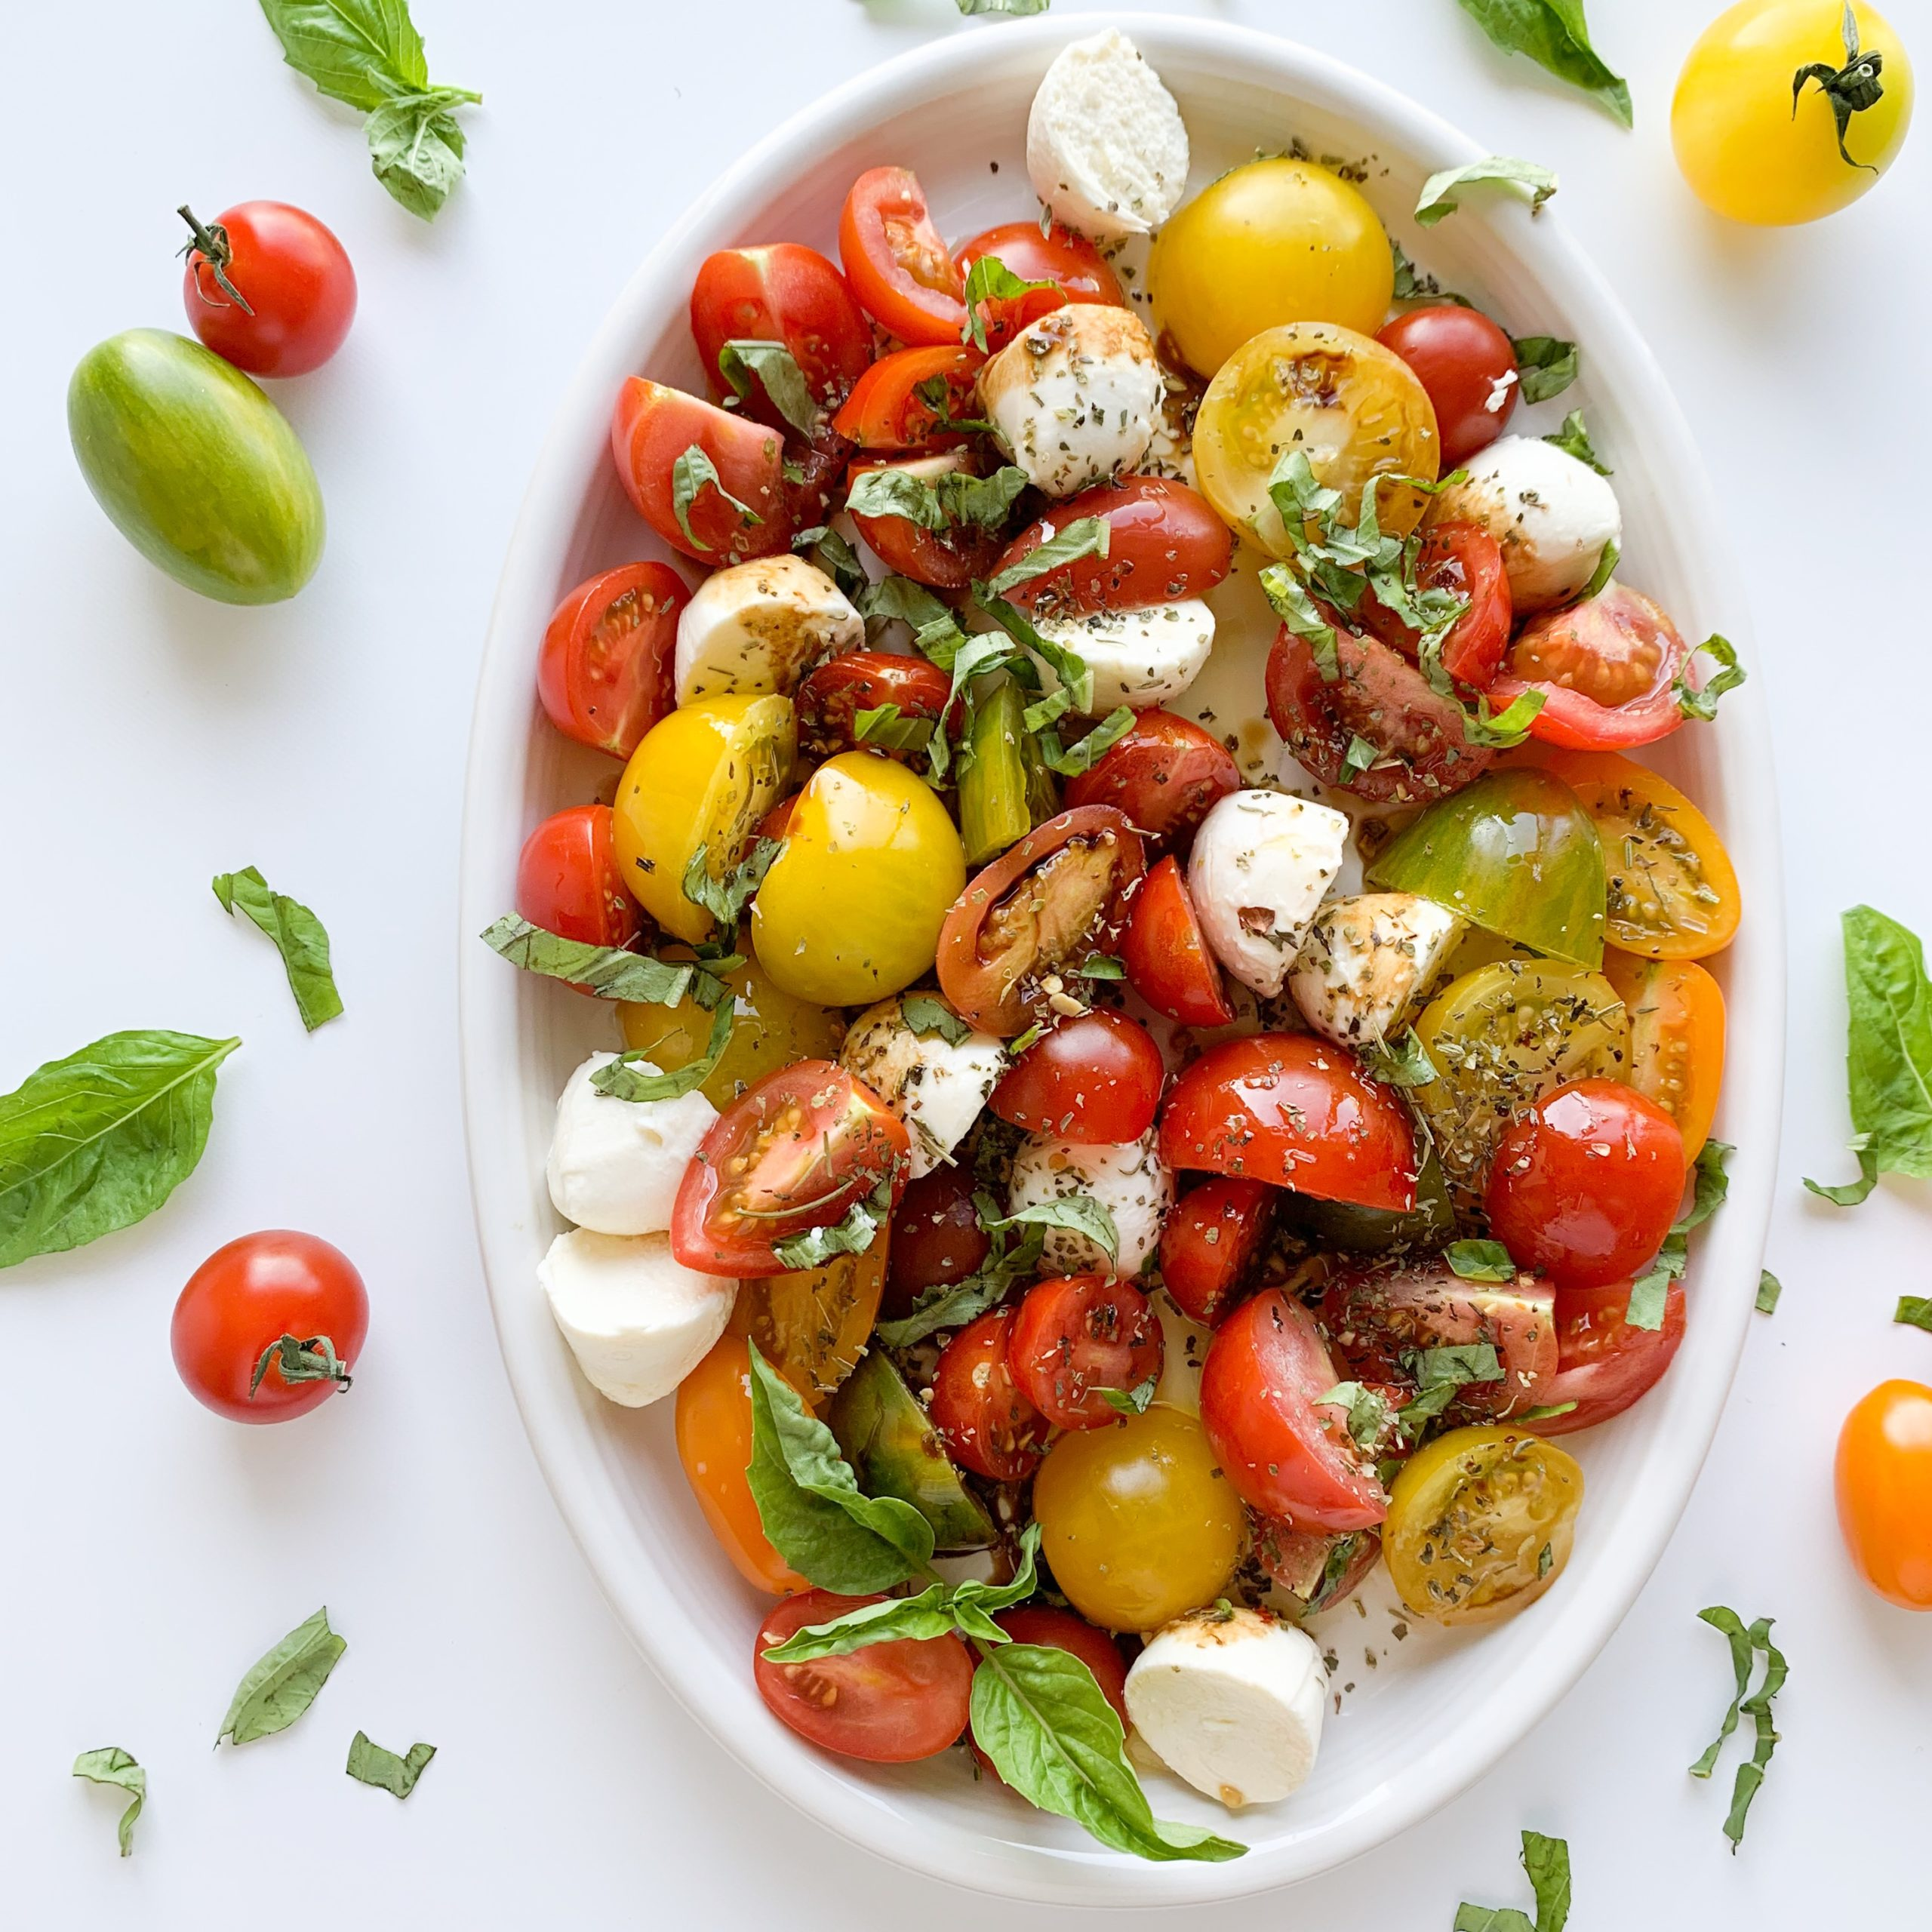 This easy gluten-free Caprese Salad takes less than 10 minutes to make and is the perfect summer salad.